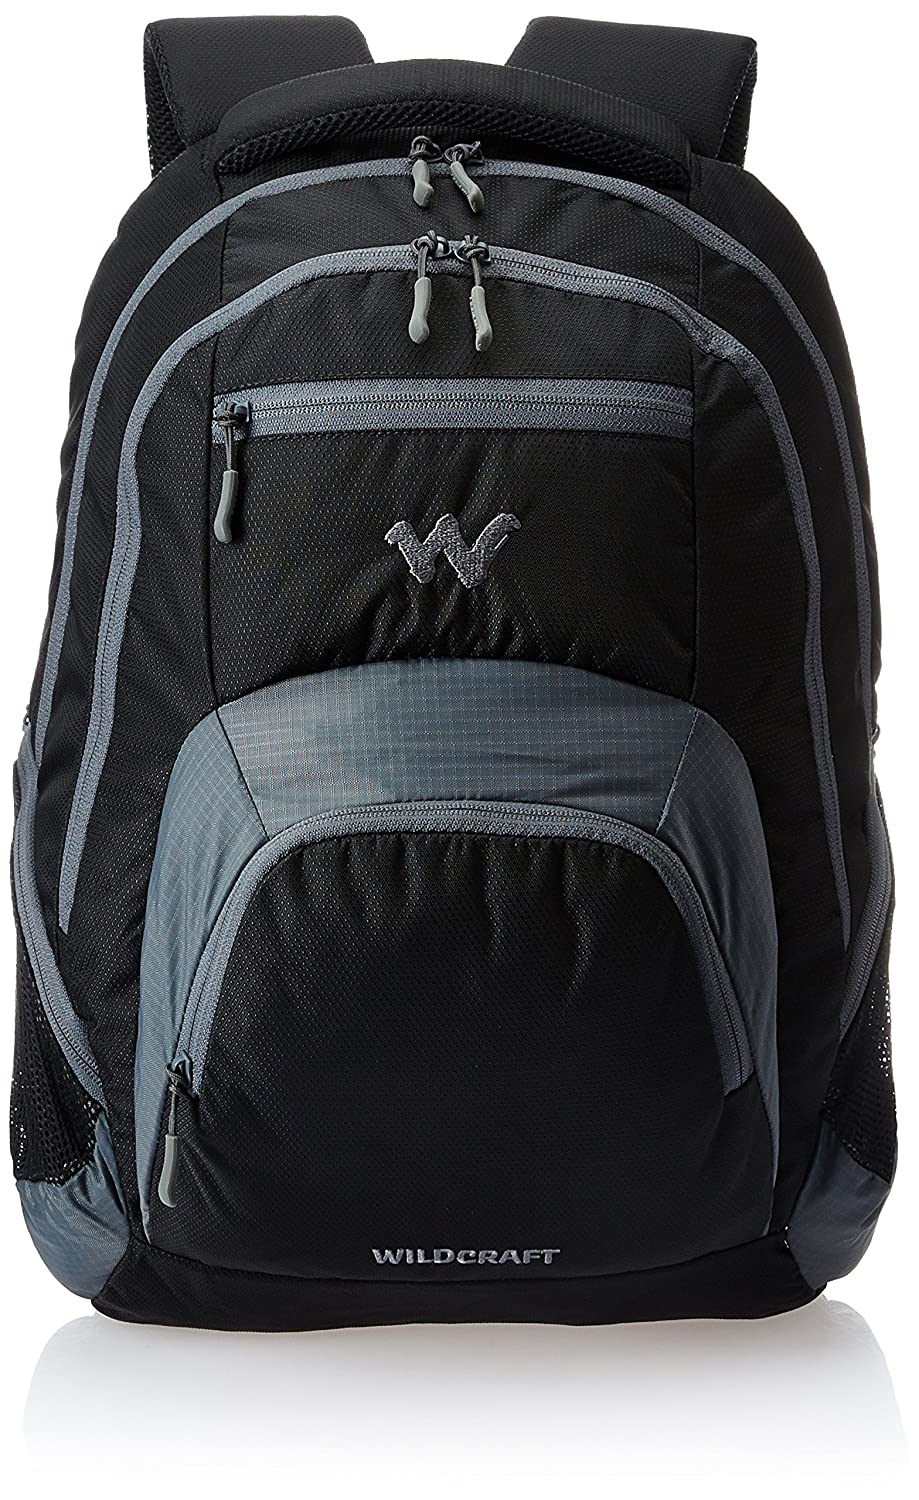 Handbags And Luggage Laptop Bags Tas Adidas Travel Gear Back Pack Navy Original Wildcraft Nylon 30 Ltrs Black Bag